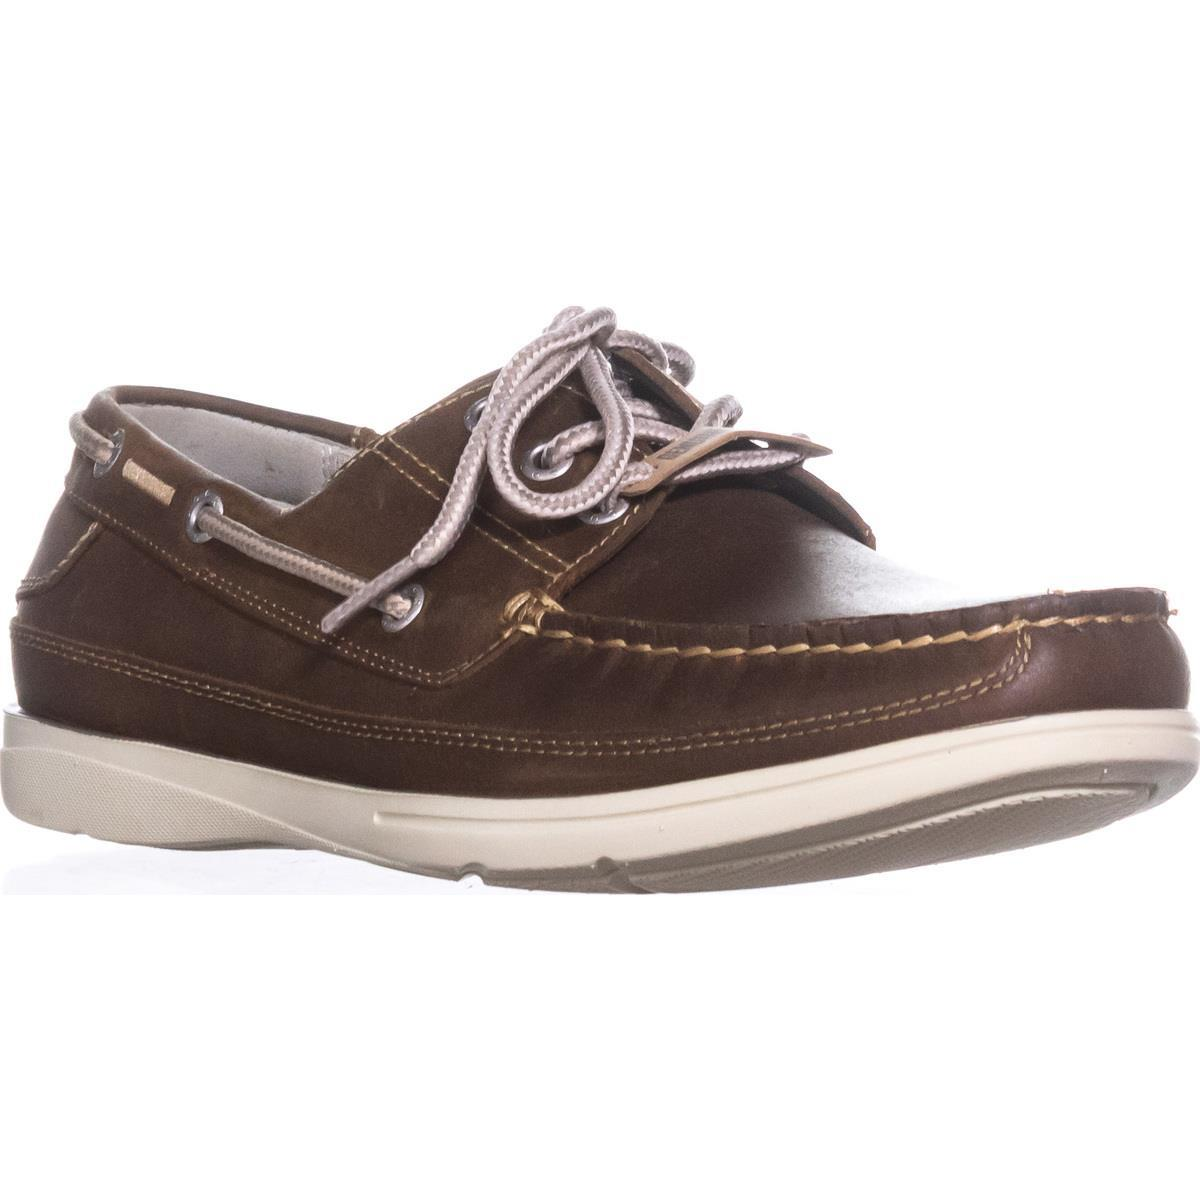 Womens Dockers Midship Men's Lace Up Boat Shoes, Dark Tan by Dockers